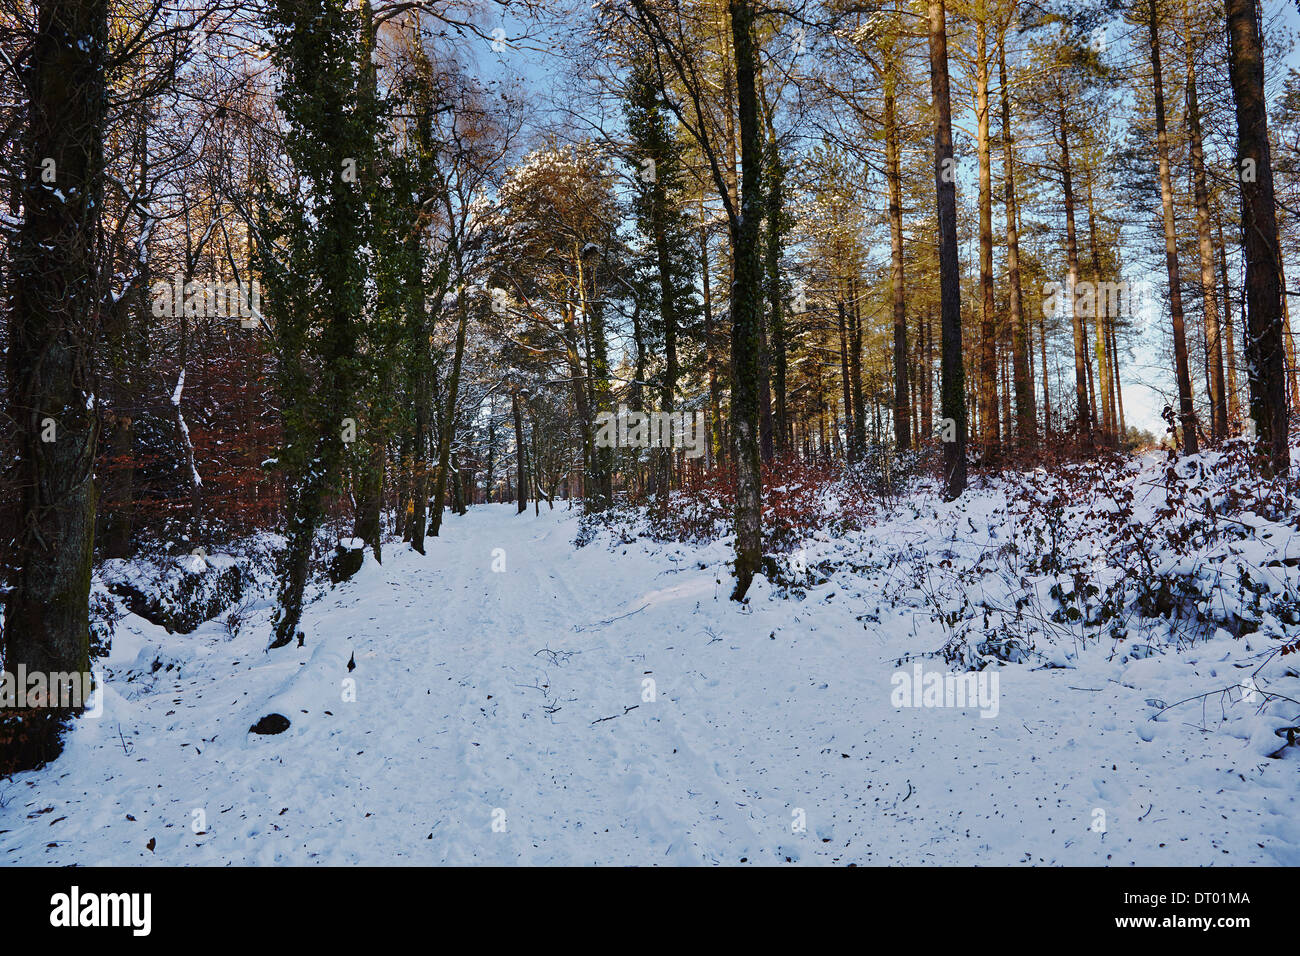 A road through the Haldon Hills in snow, near Mamhead, near Exeter, Devon, Great Britain. - Stock Image